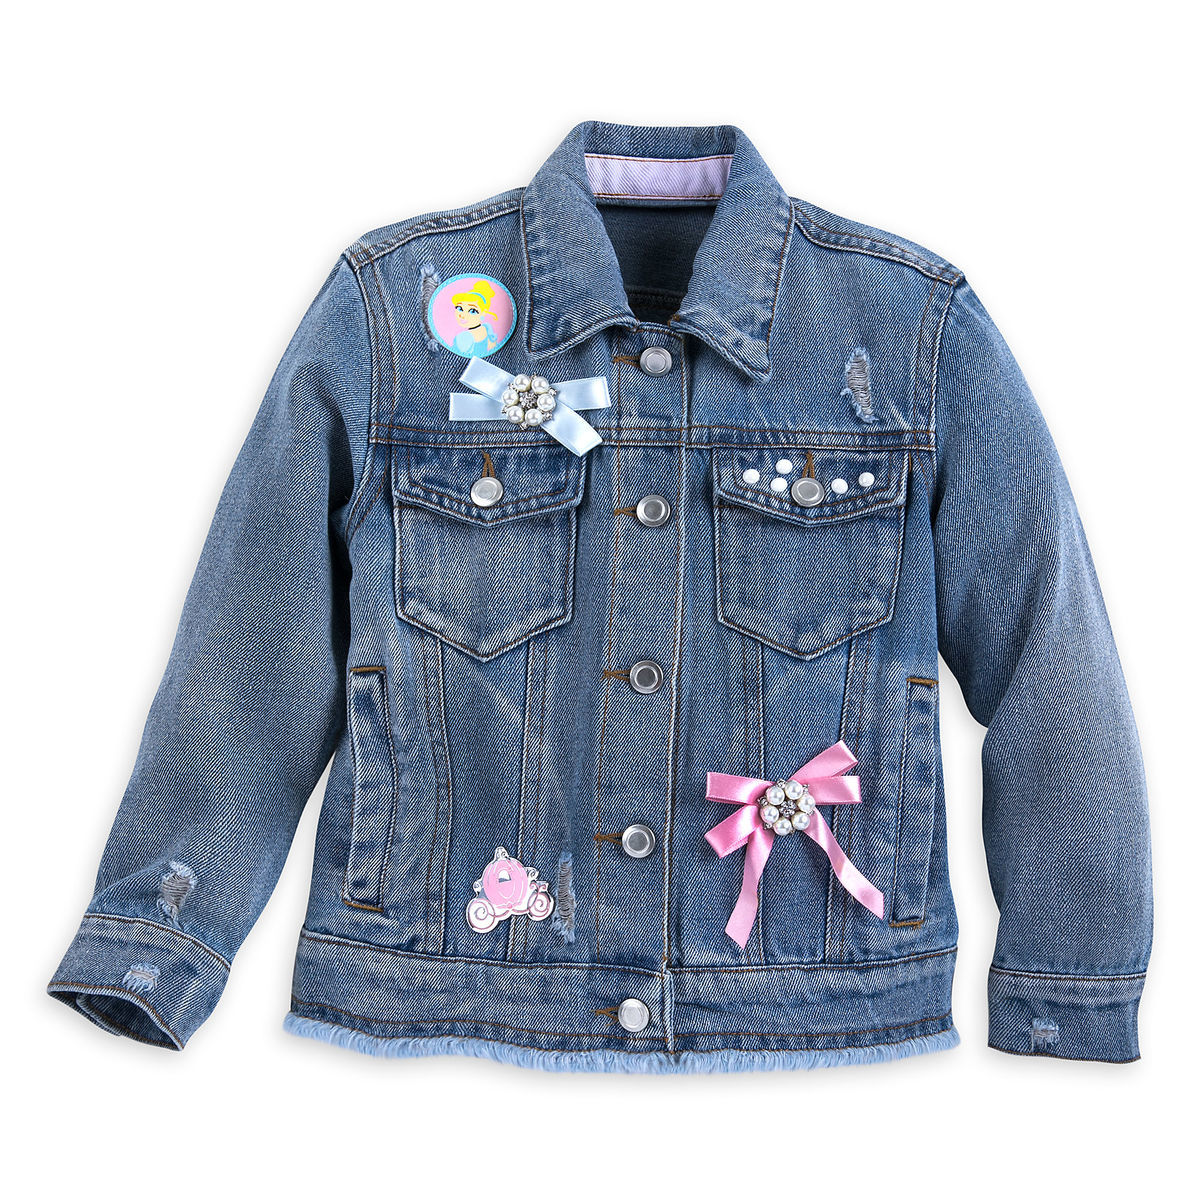 Cinderella Denim Jacket For Girls Shopdisney